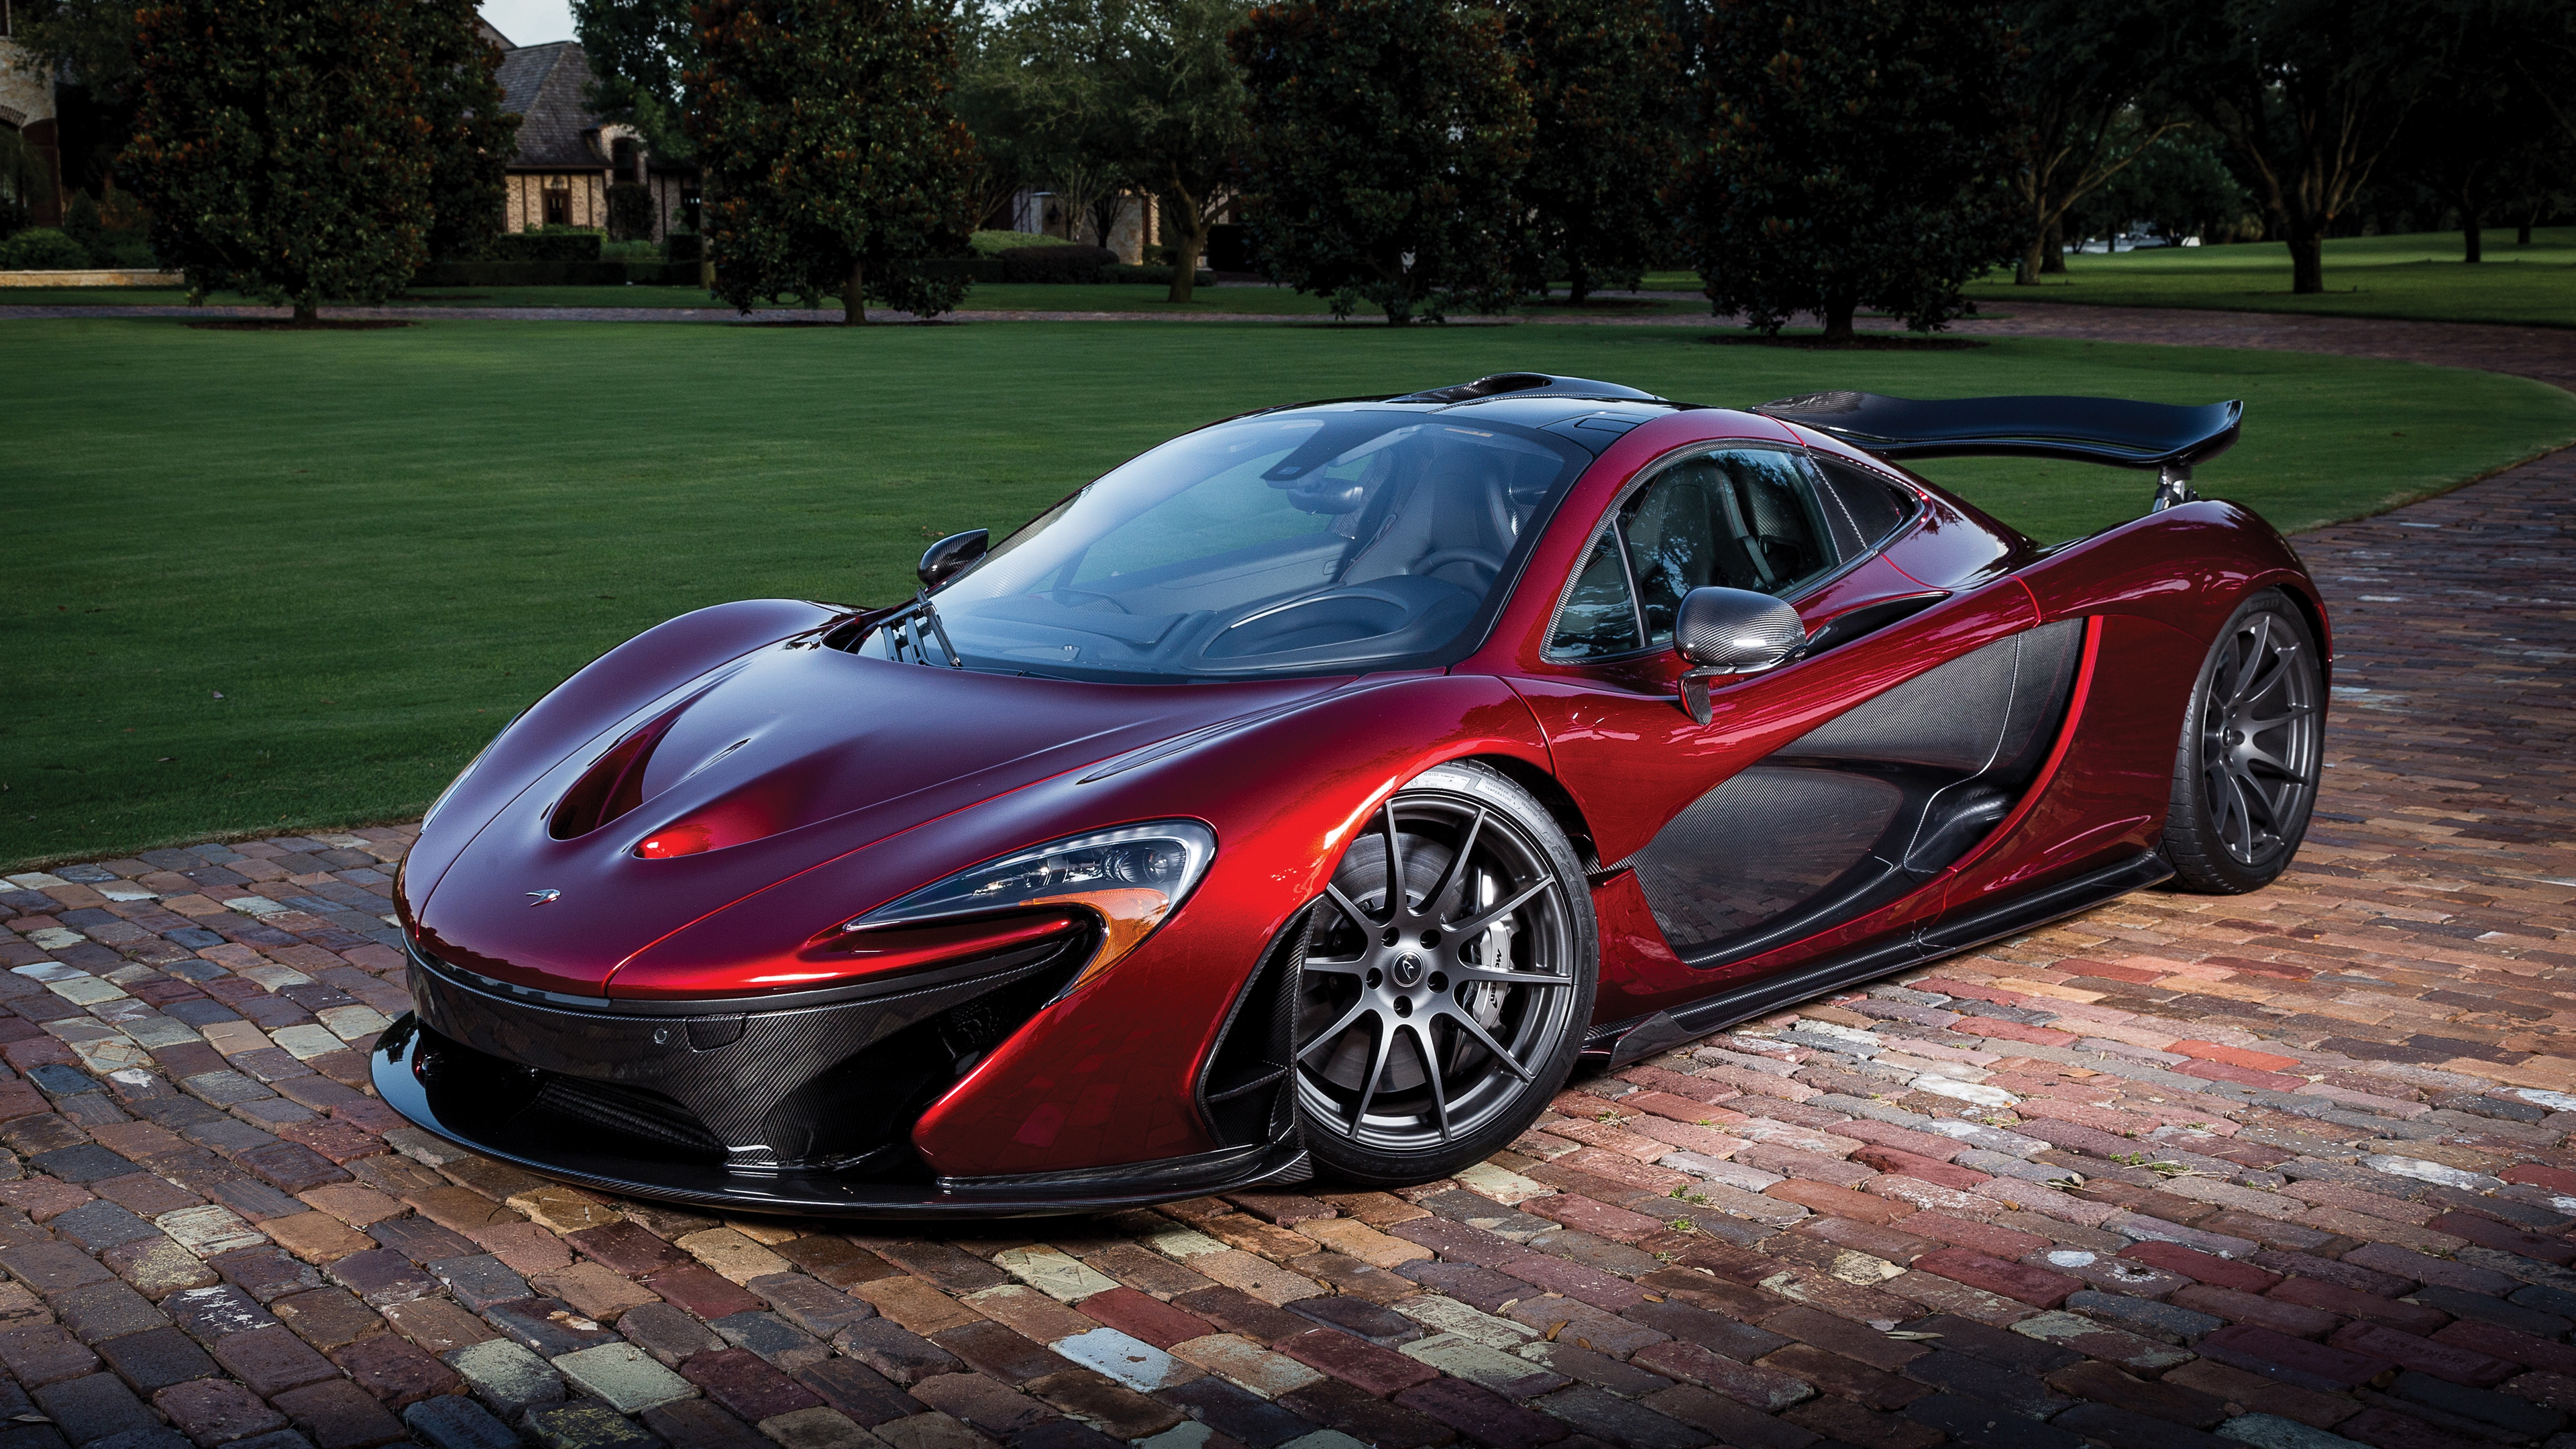 mclaren p1 red sports car side view 4k 1538935232 - mclaren, p1, red, sports car, side view 4k - red, p1, Mclaren